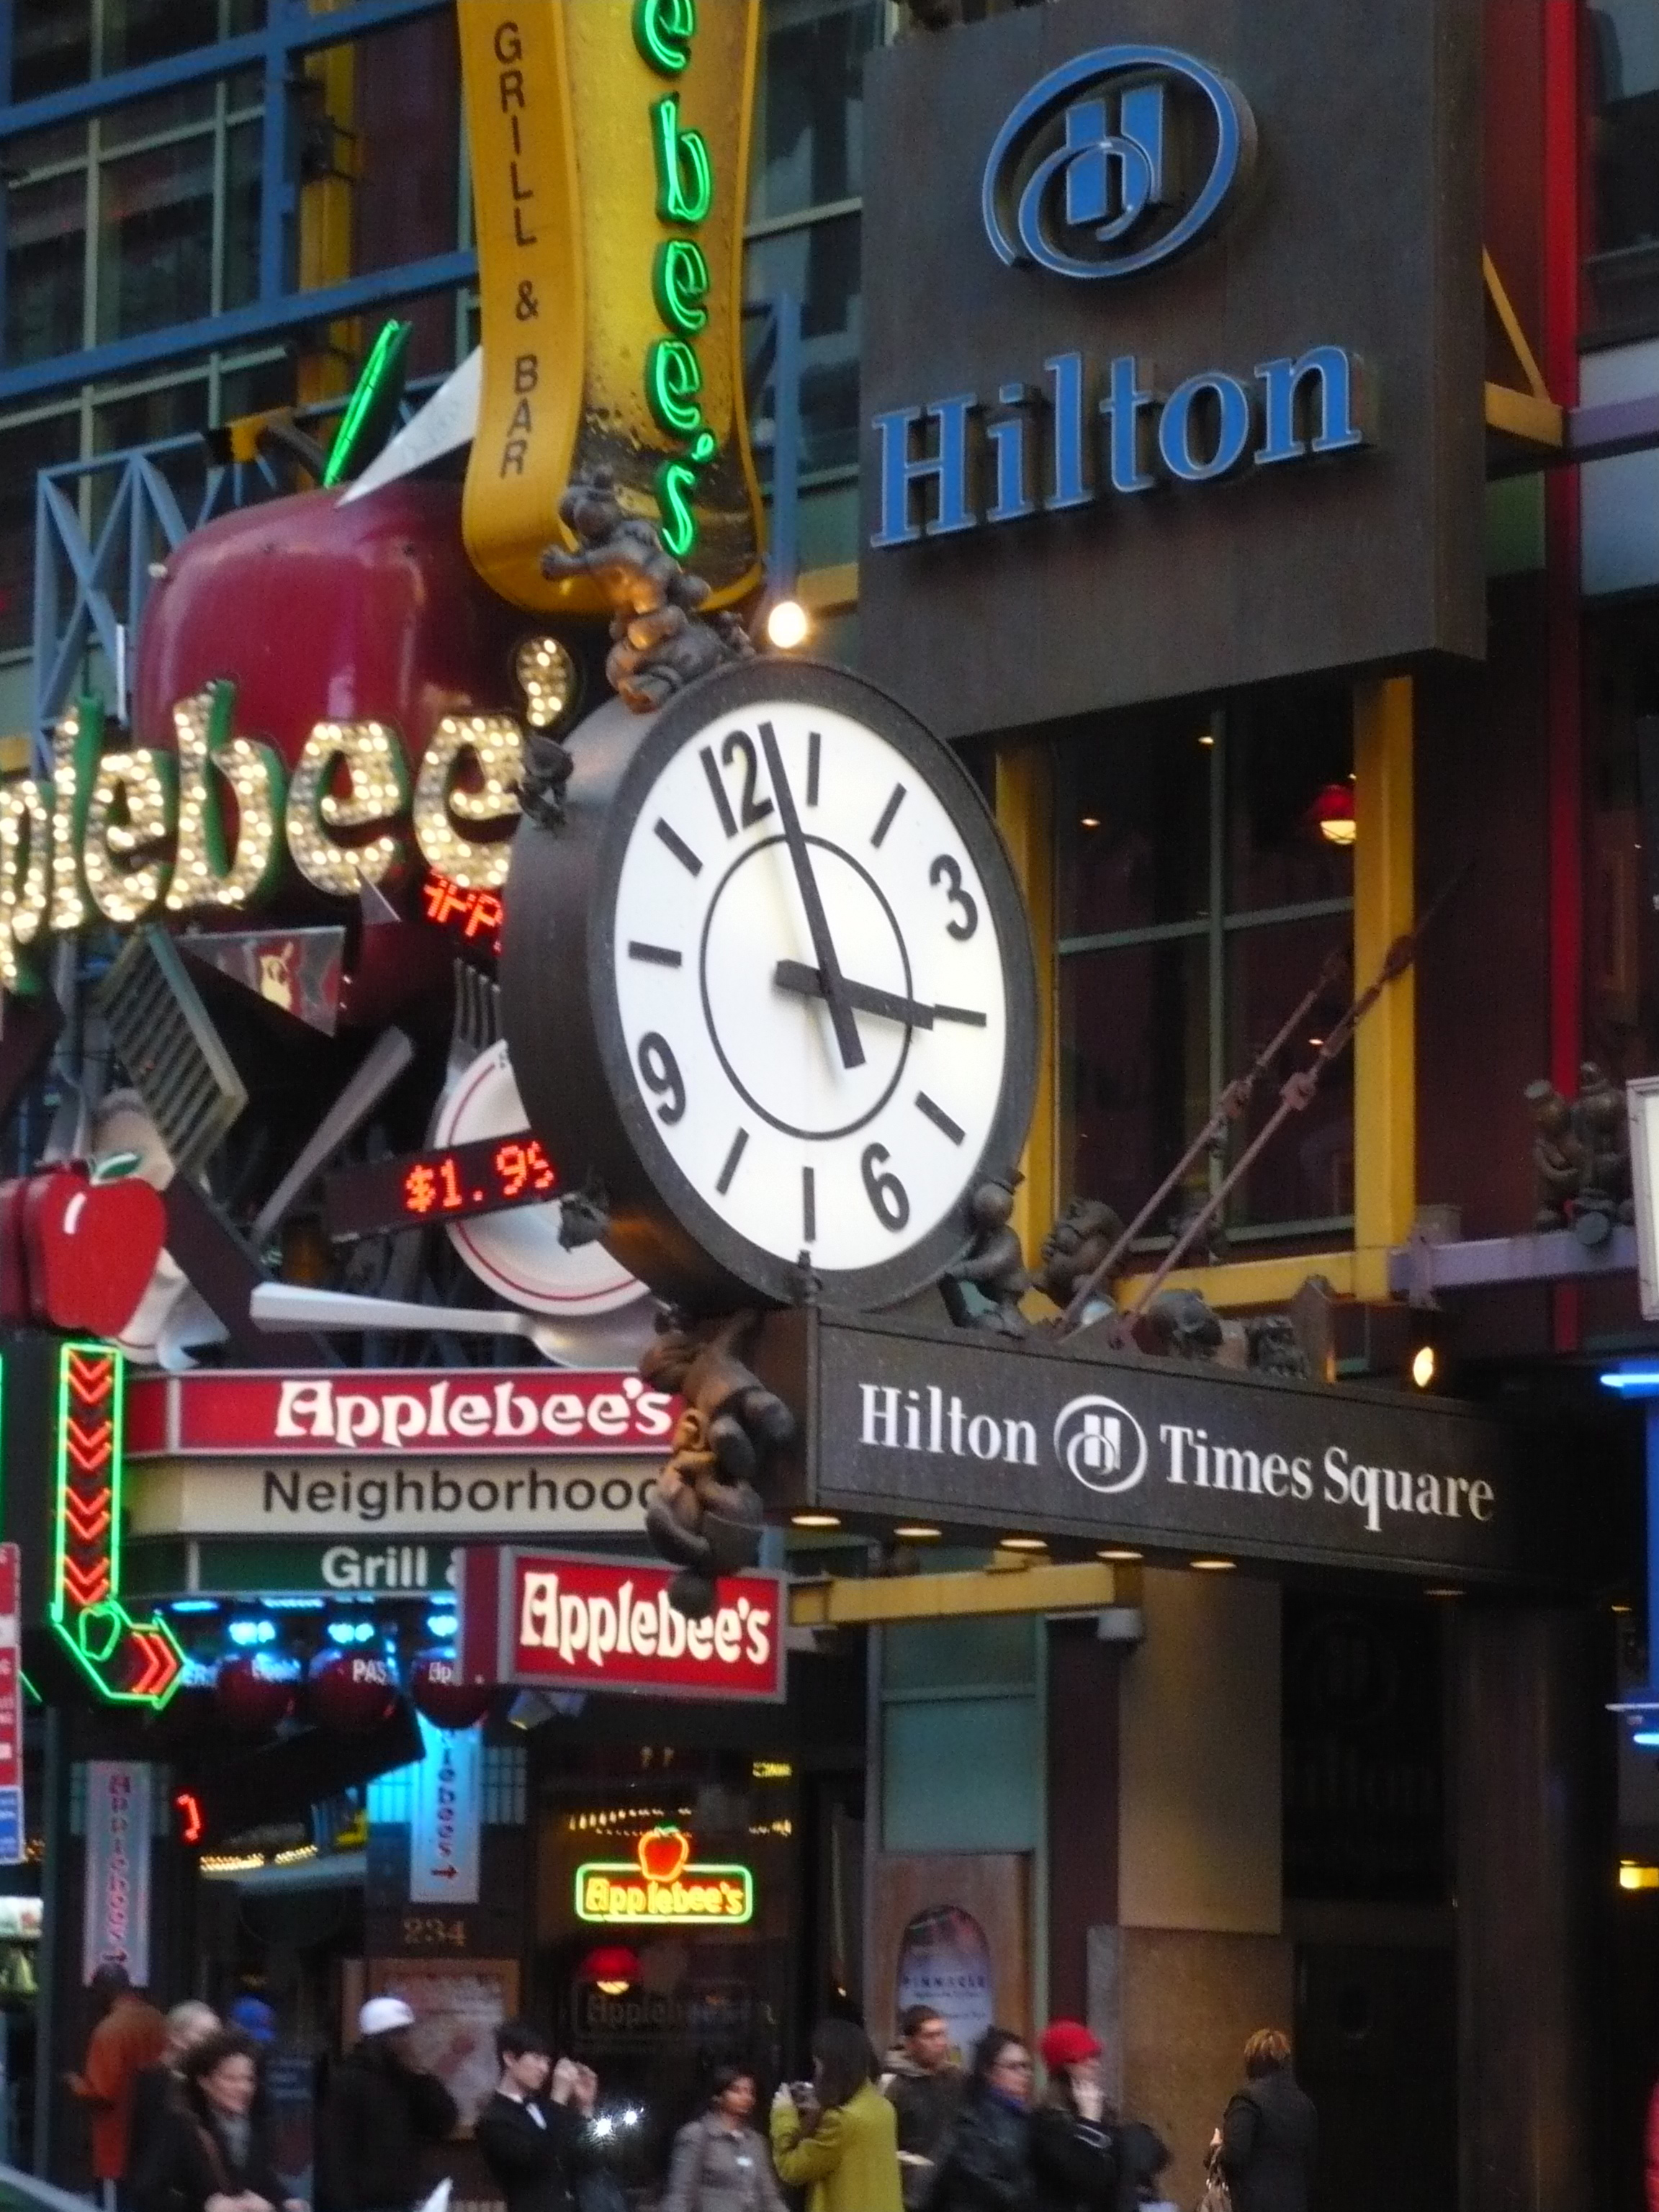 Hilton Hotel, Times Square, NYC